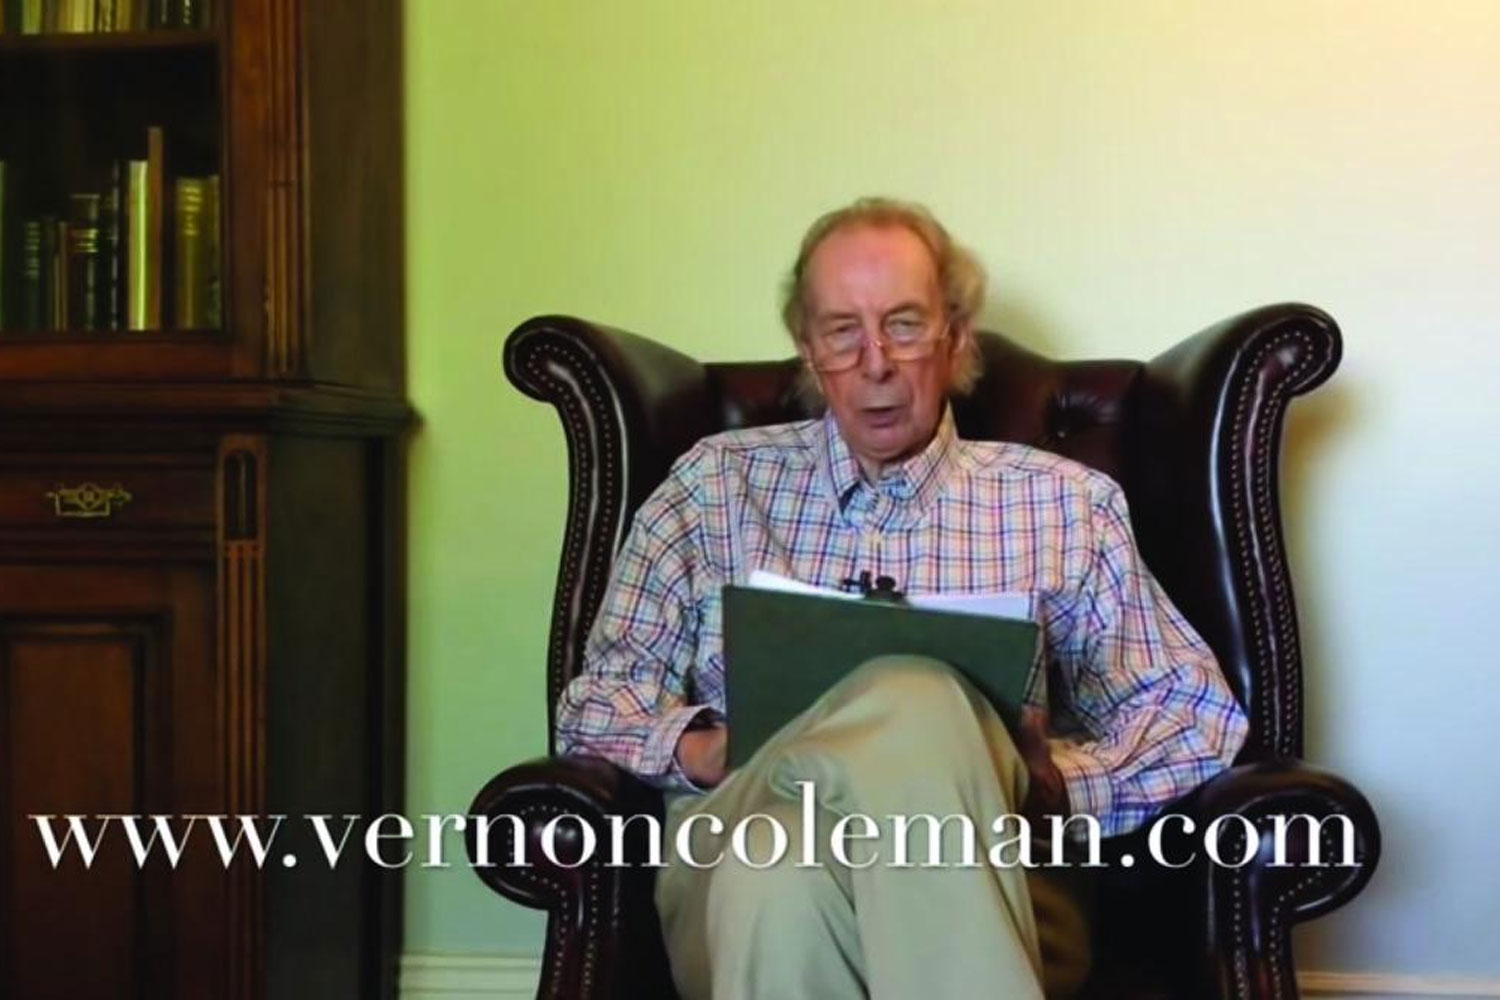 Doctor Vernon Coleman on the Risks associated with taking a new Covid19 Vaccine